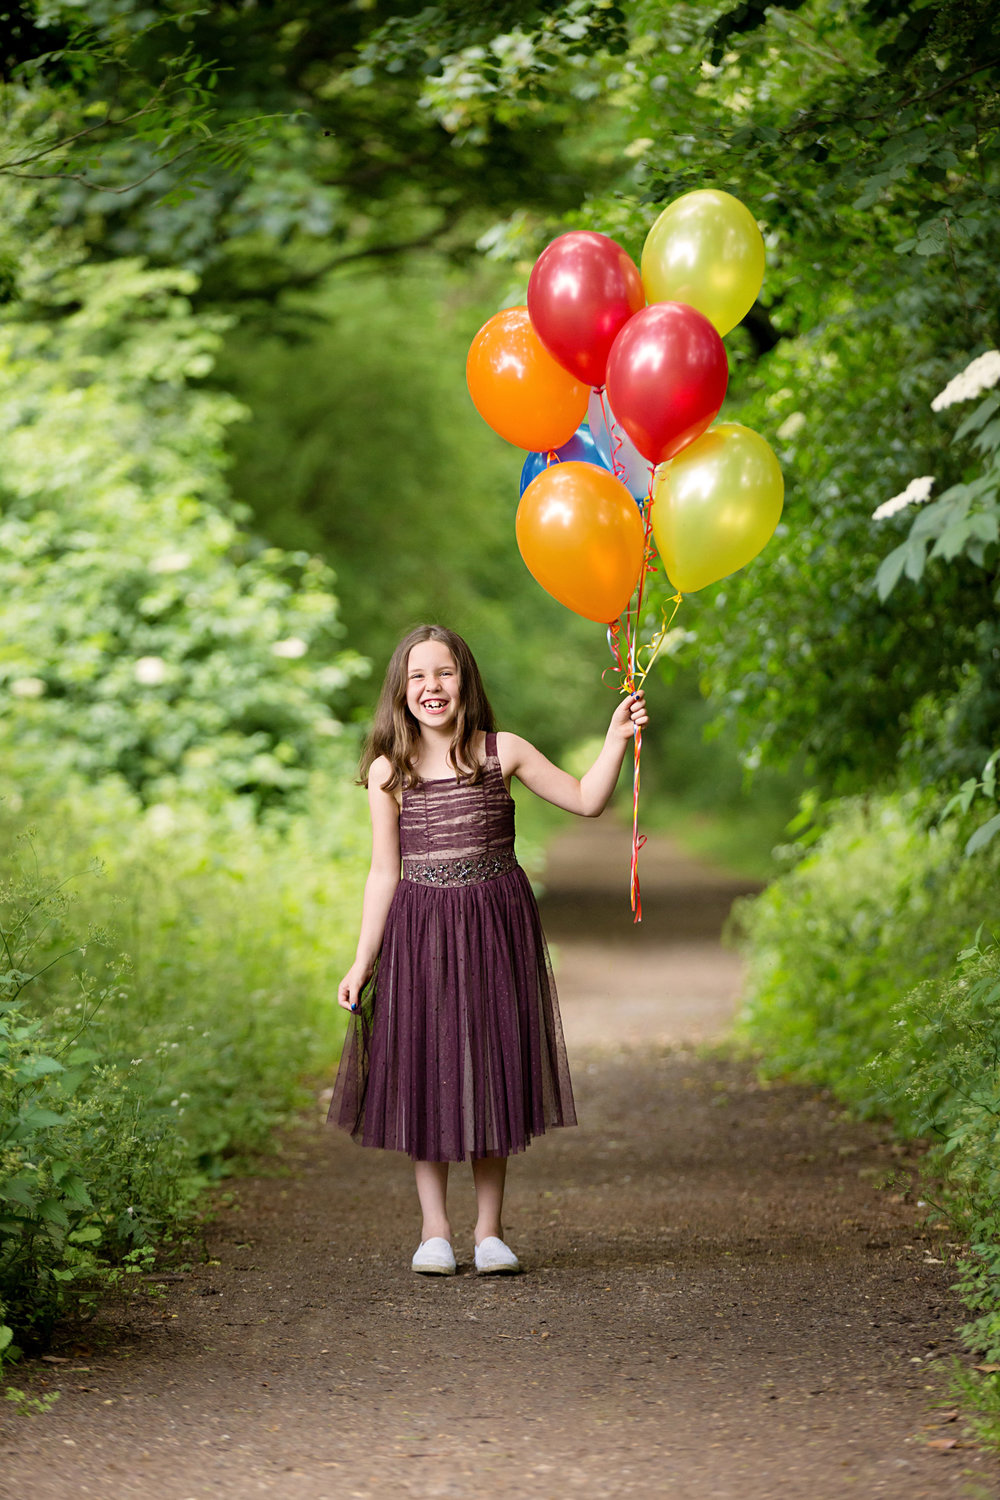 photo by becki williams photography of 8 year old girl holding balloons, laughing